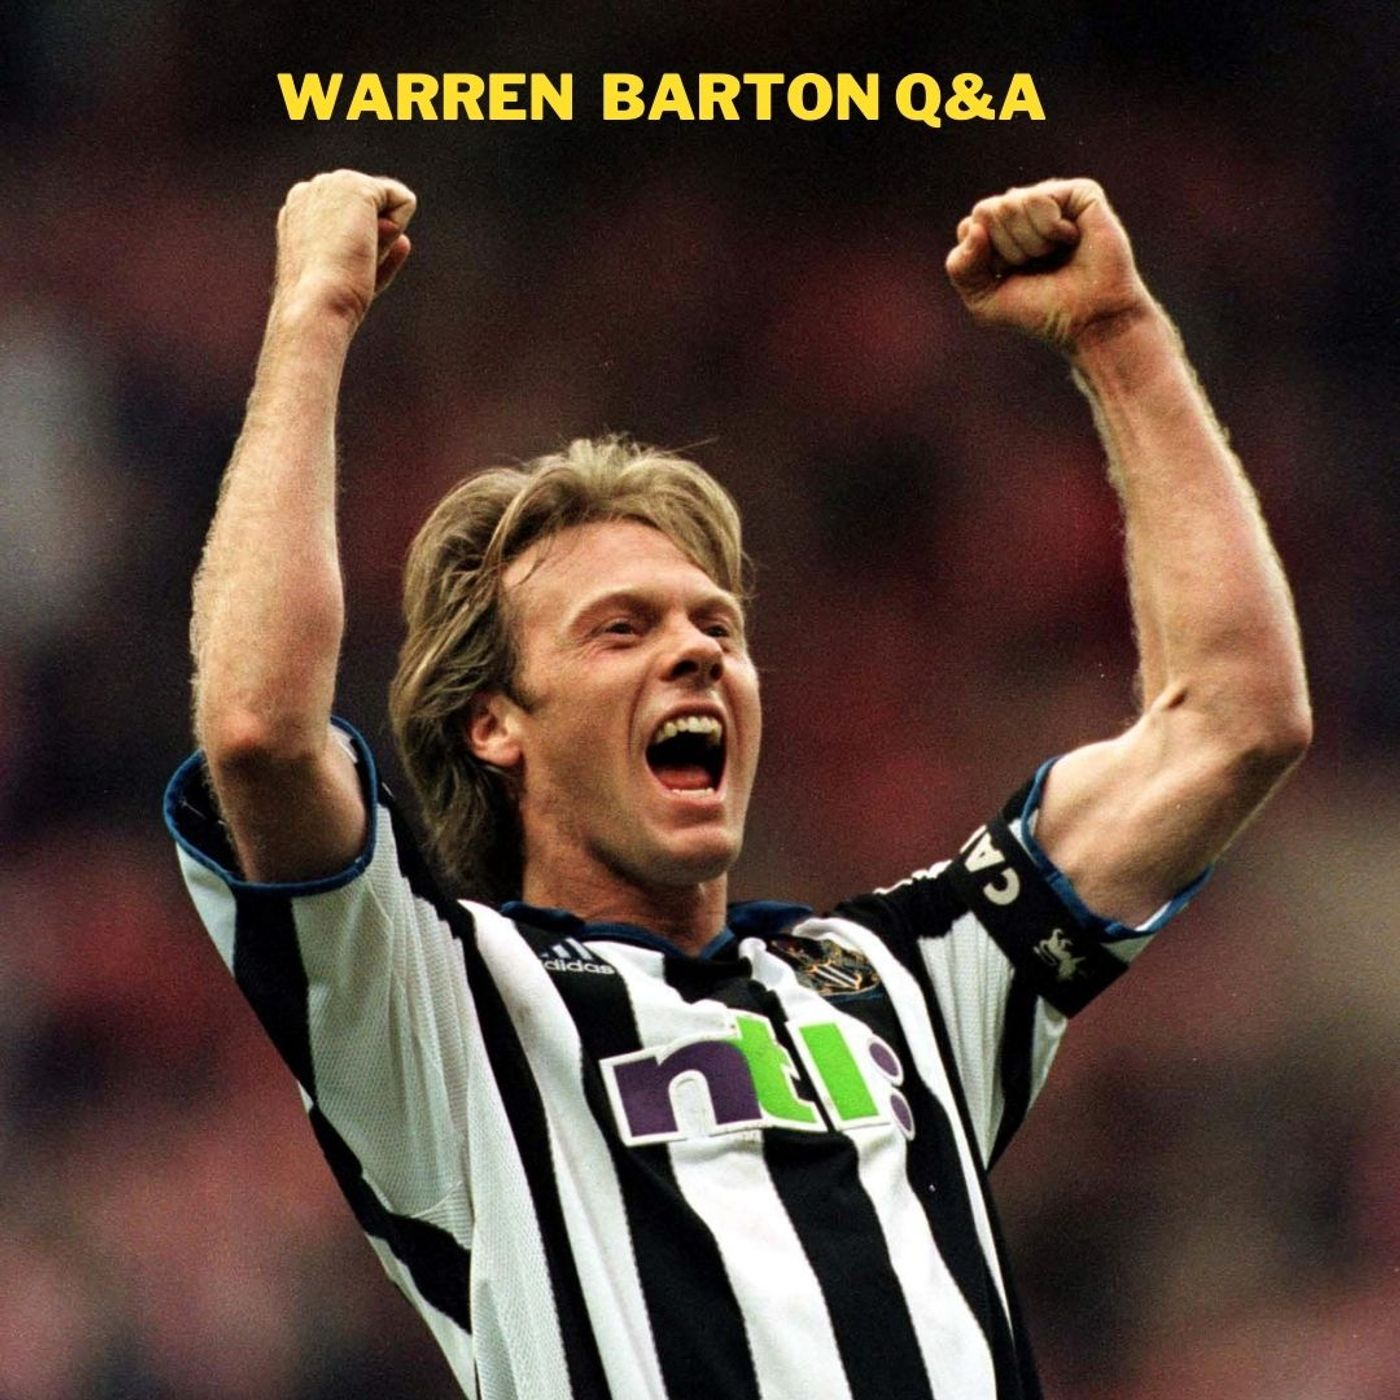 'It feels like a joke' - NUFC legend Warren Barton sums up the Magpies' season so far